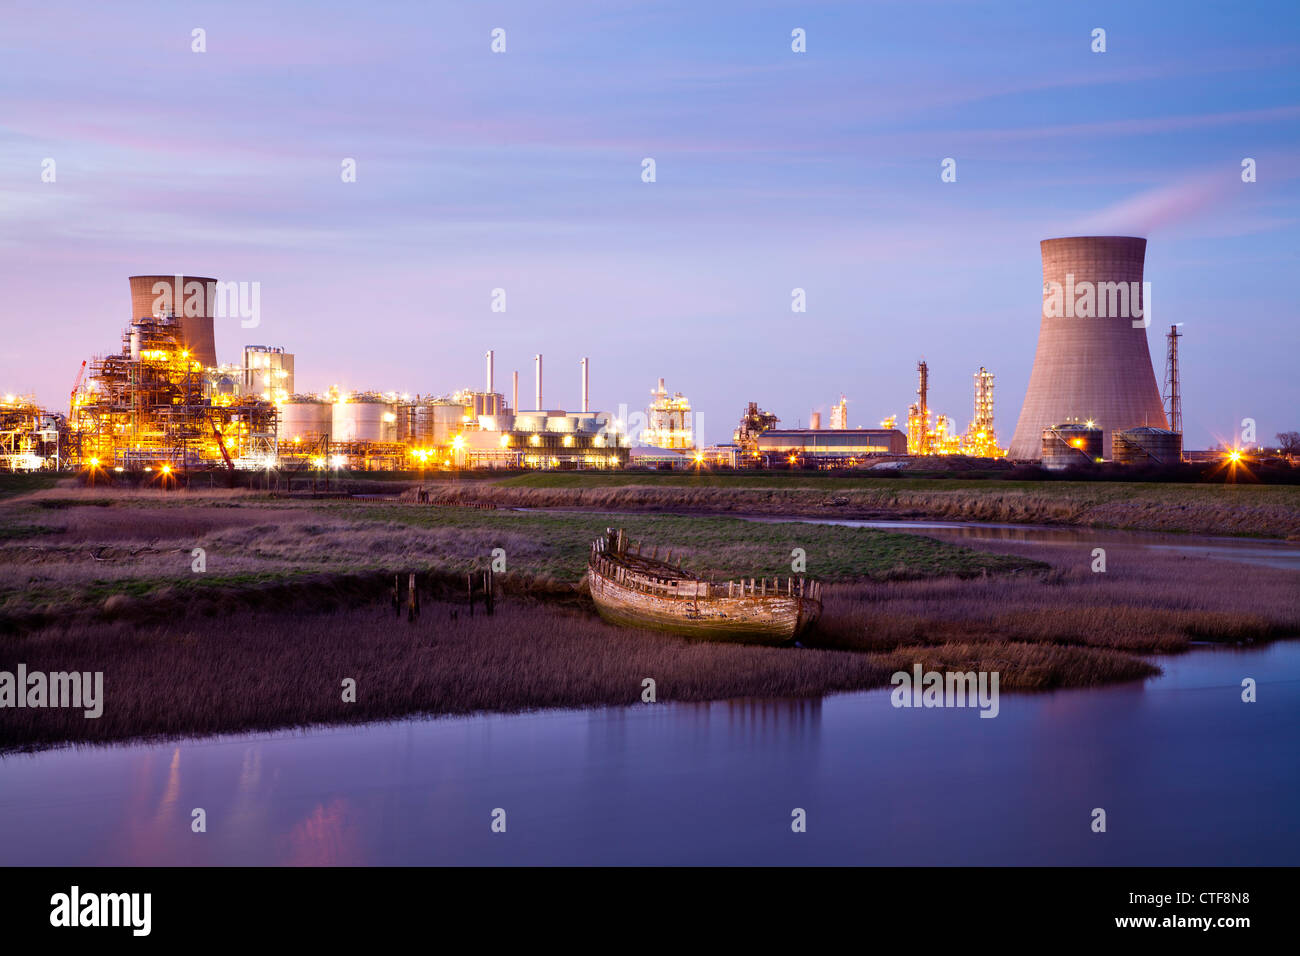 Saltend chemical works and powerstation from Hedon Havon near Paull, East Yorkshire. - Stock Image